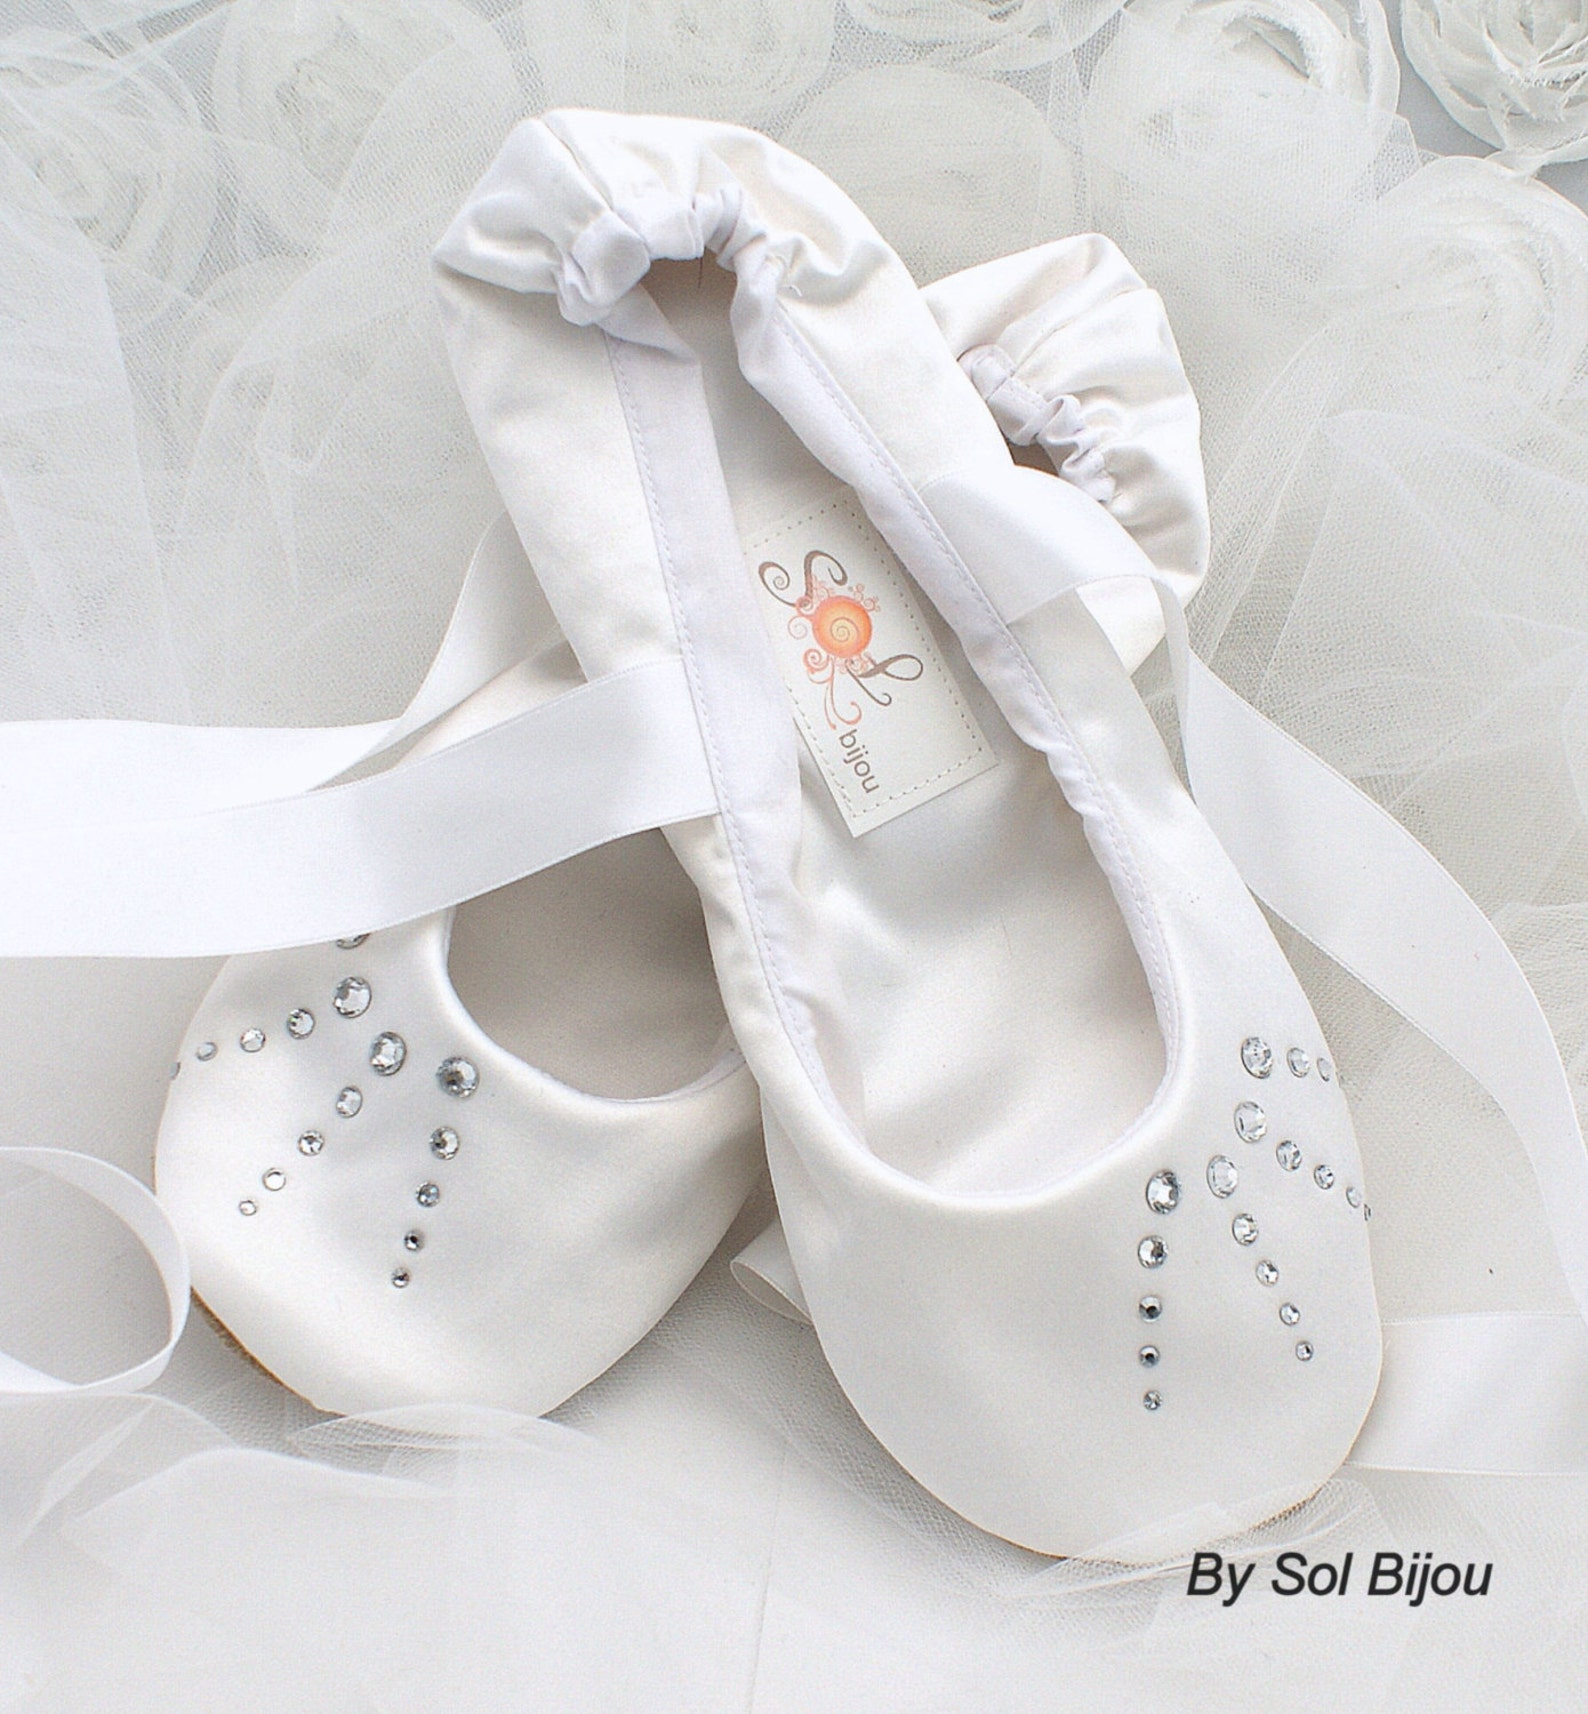 crystal ballet flats, white flats, wedding, shoes, flower girl, first communion, ballerina slippers, shoes, white, satin, crysta